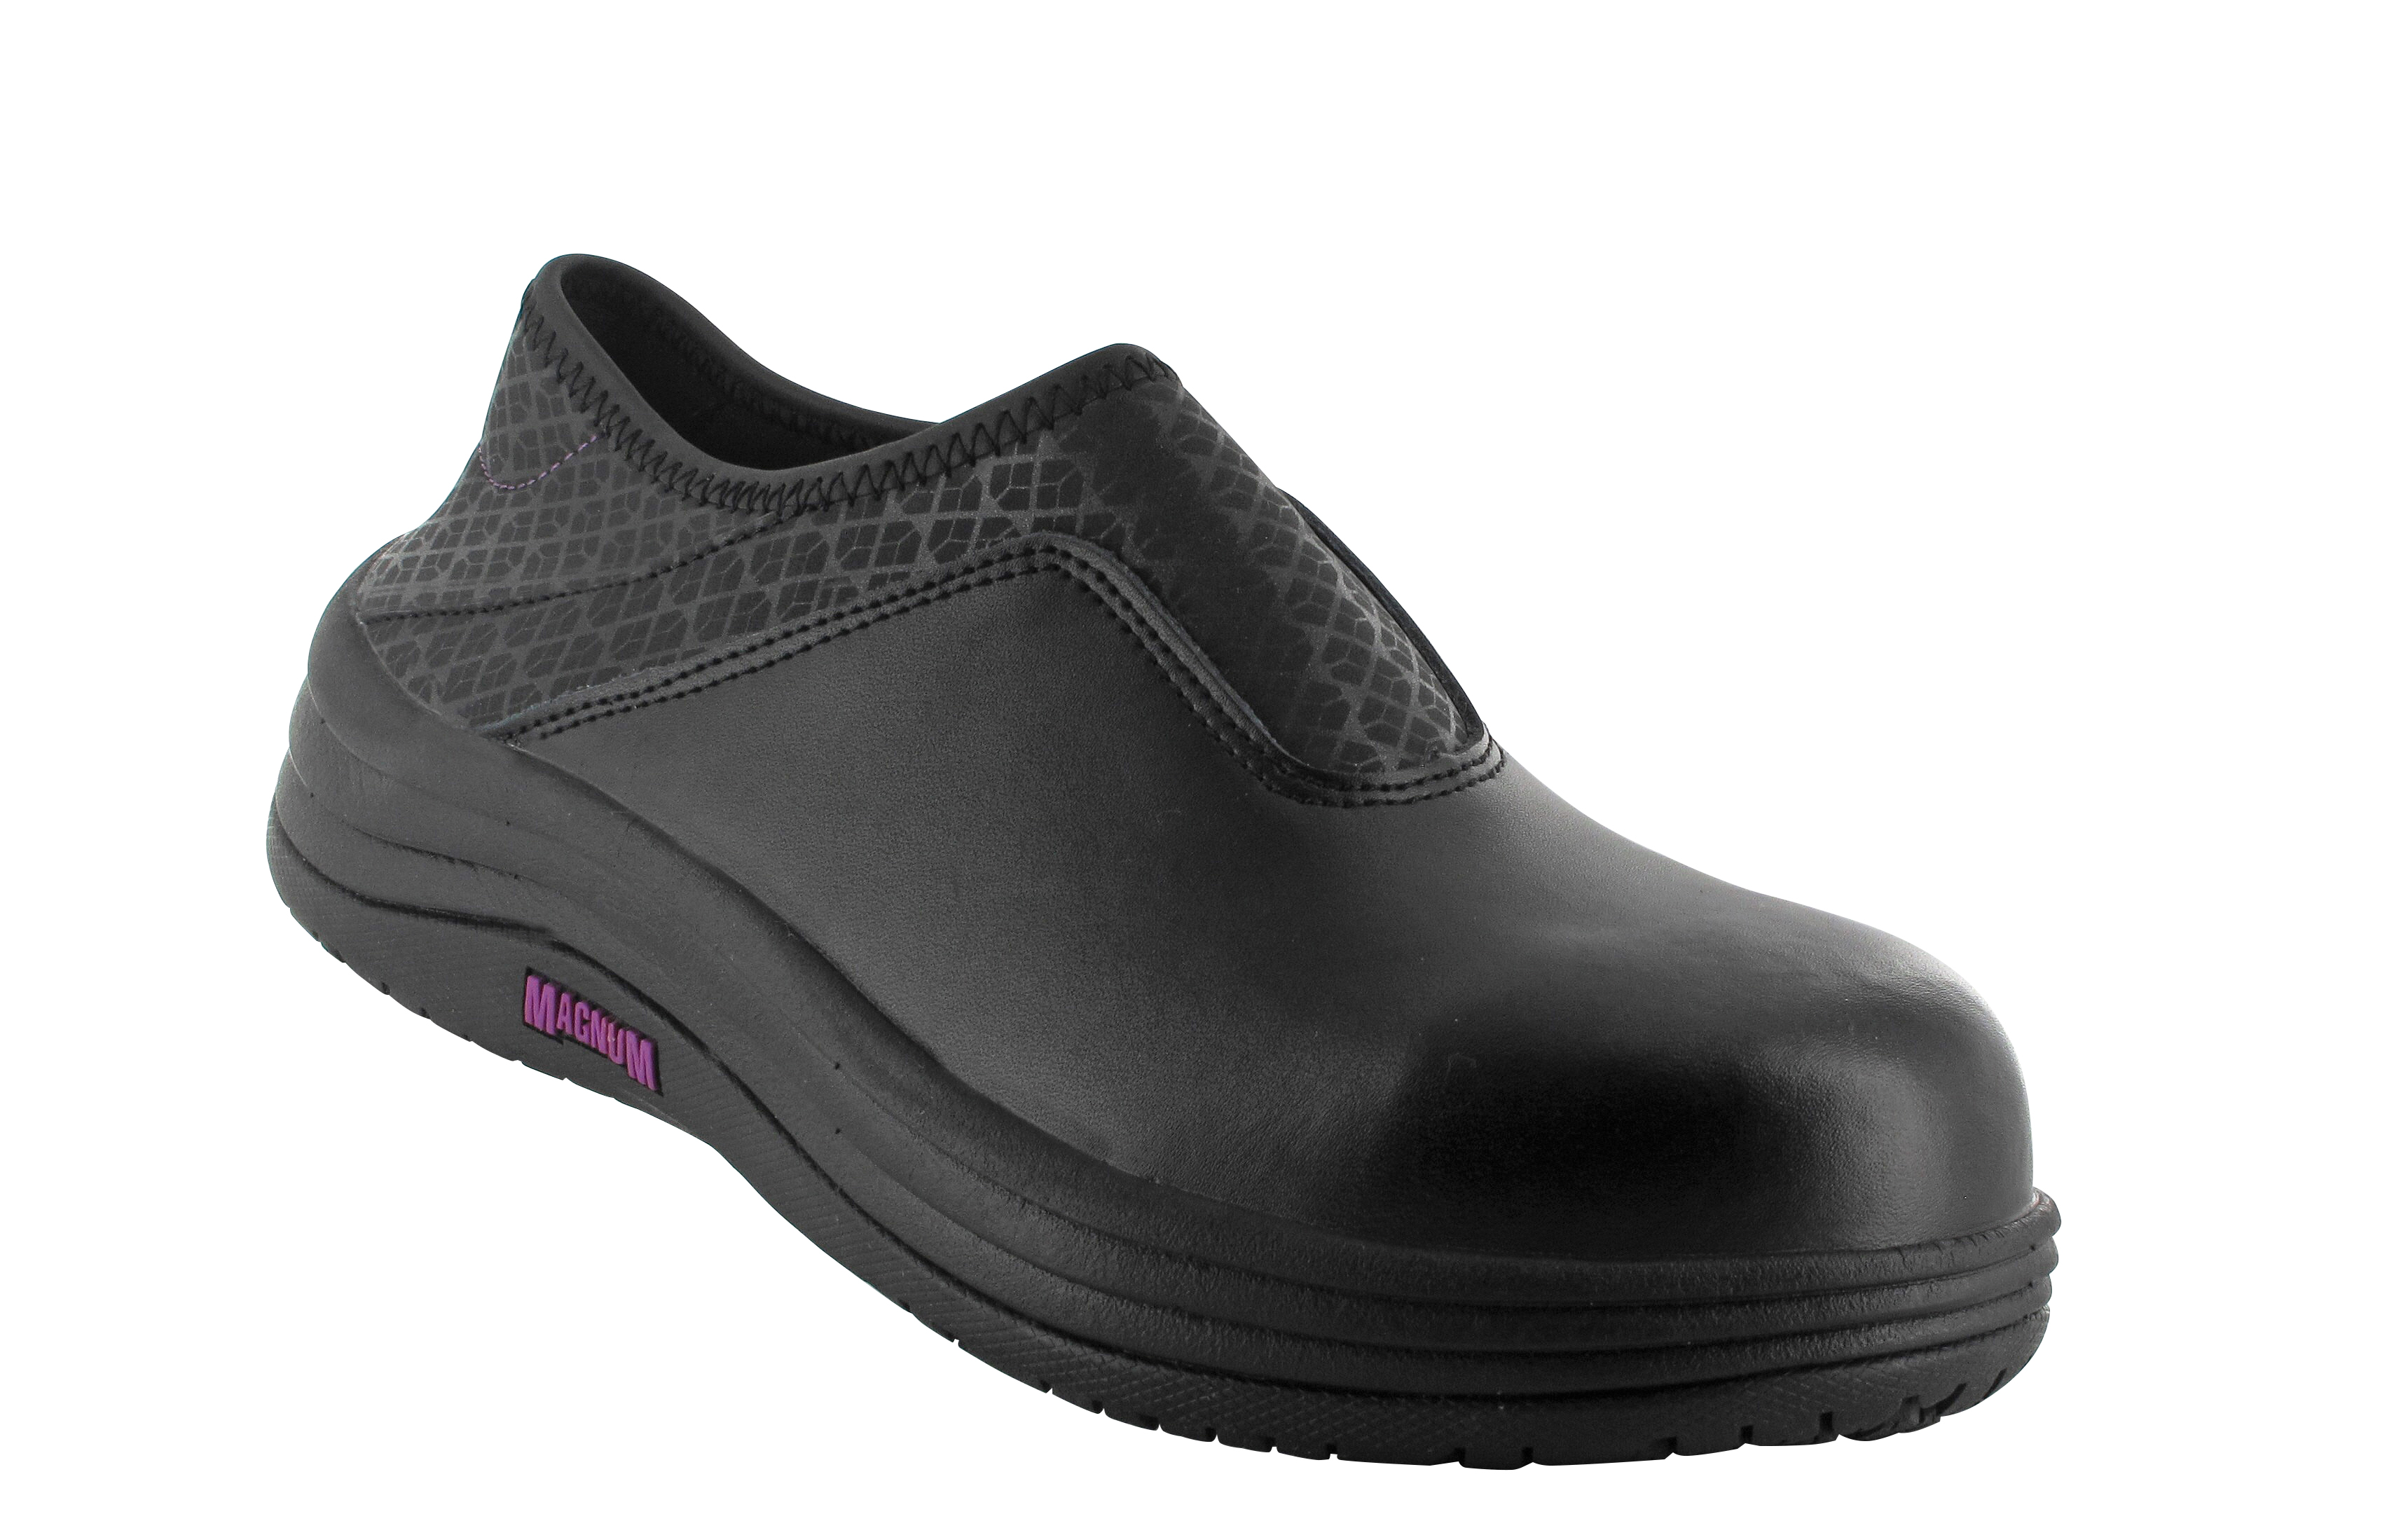 New Magnum Womens Black Nurses Healthcare Catering Work Slip Resistant Shoes | EBay